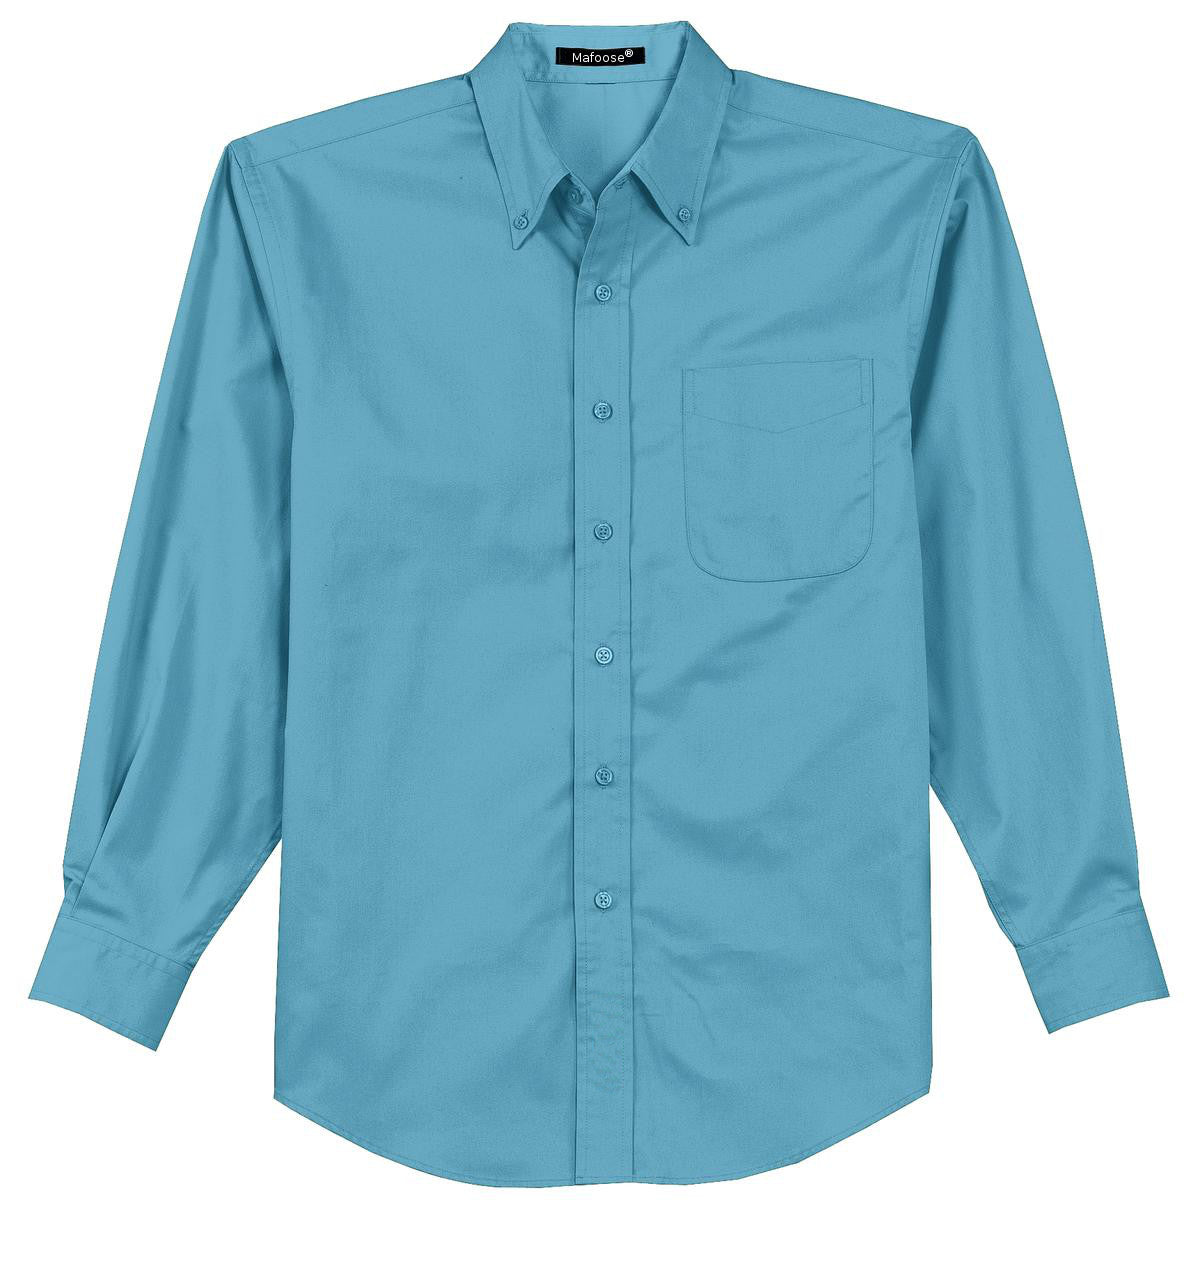 Mafoose Men's Tall Long Sleeve Easy Care Shirt Maui Blue-Front